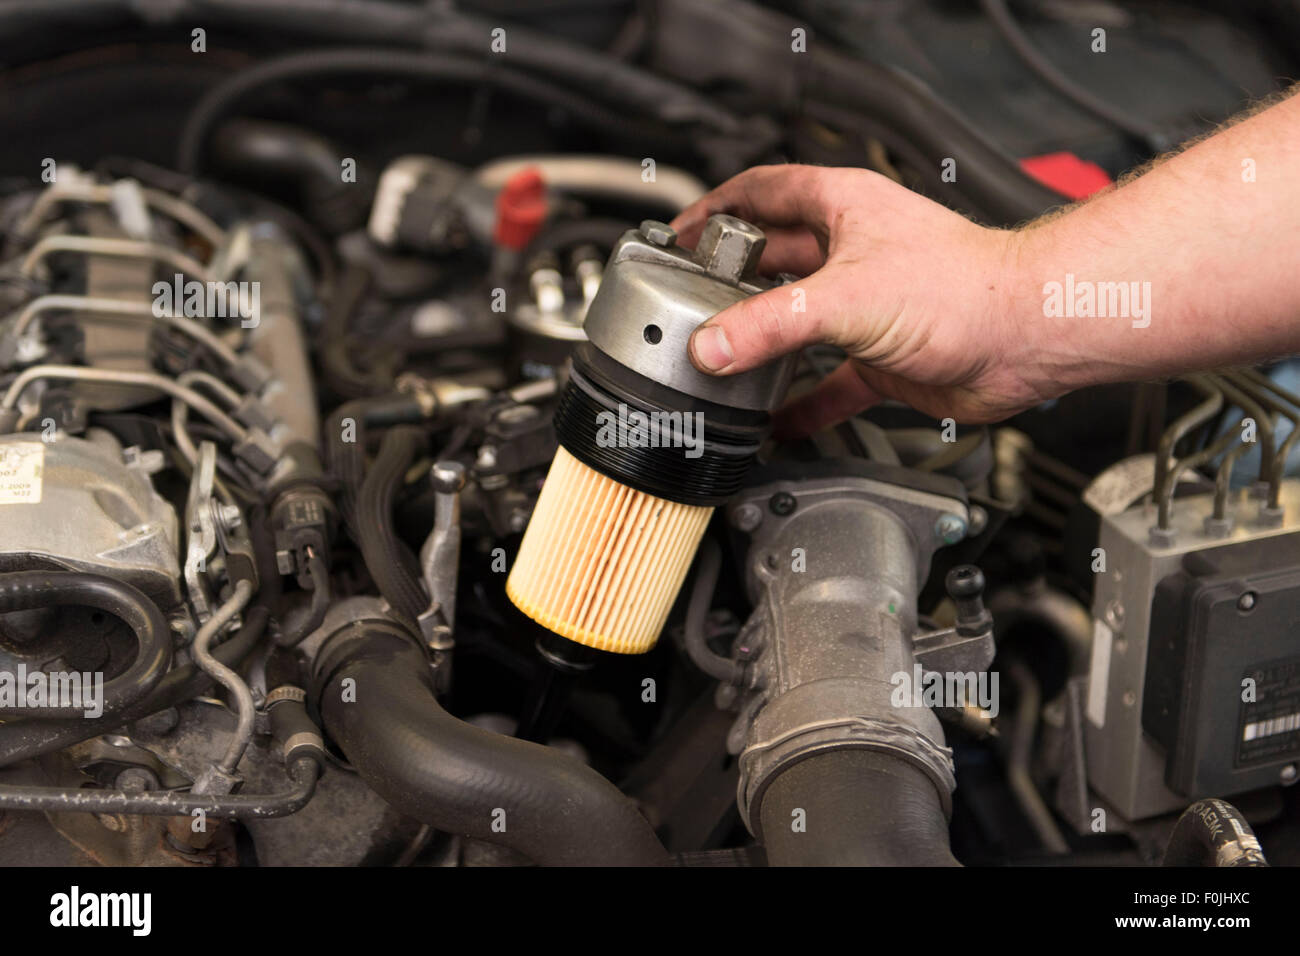 A car mechanic fits an oil filter to a car during general maintenance - Stock Image